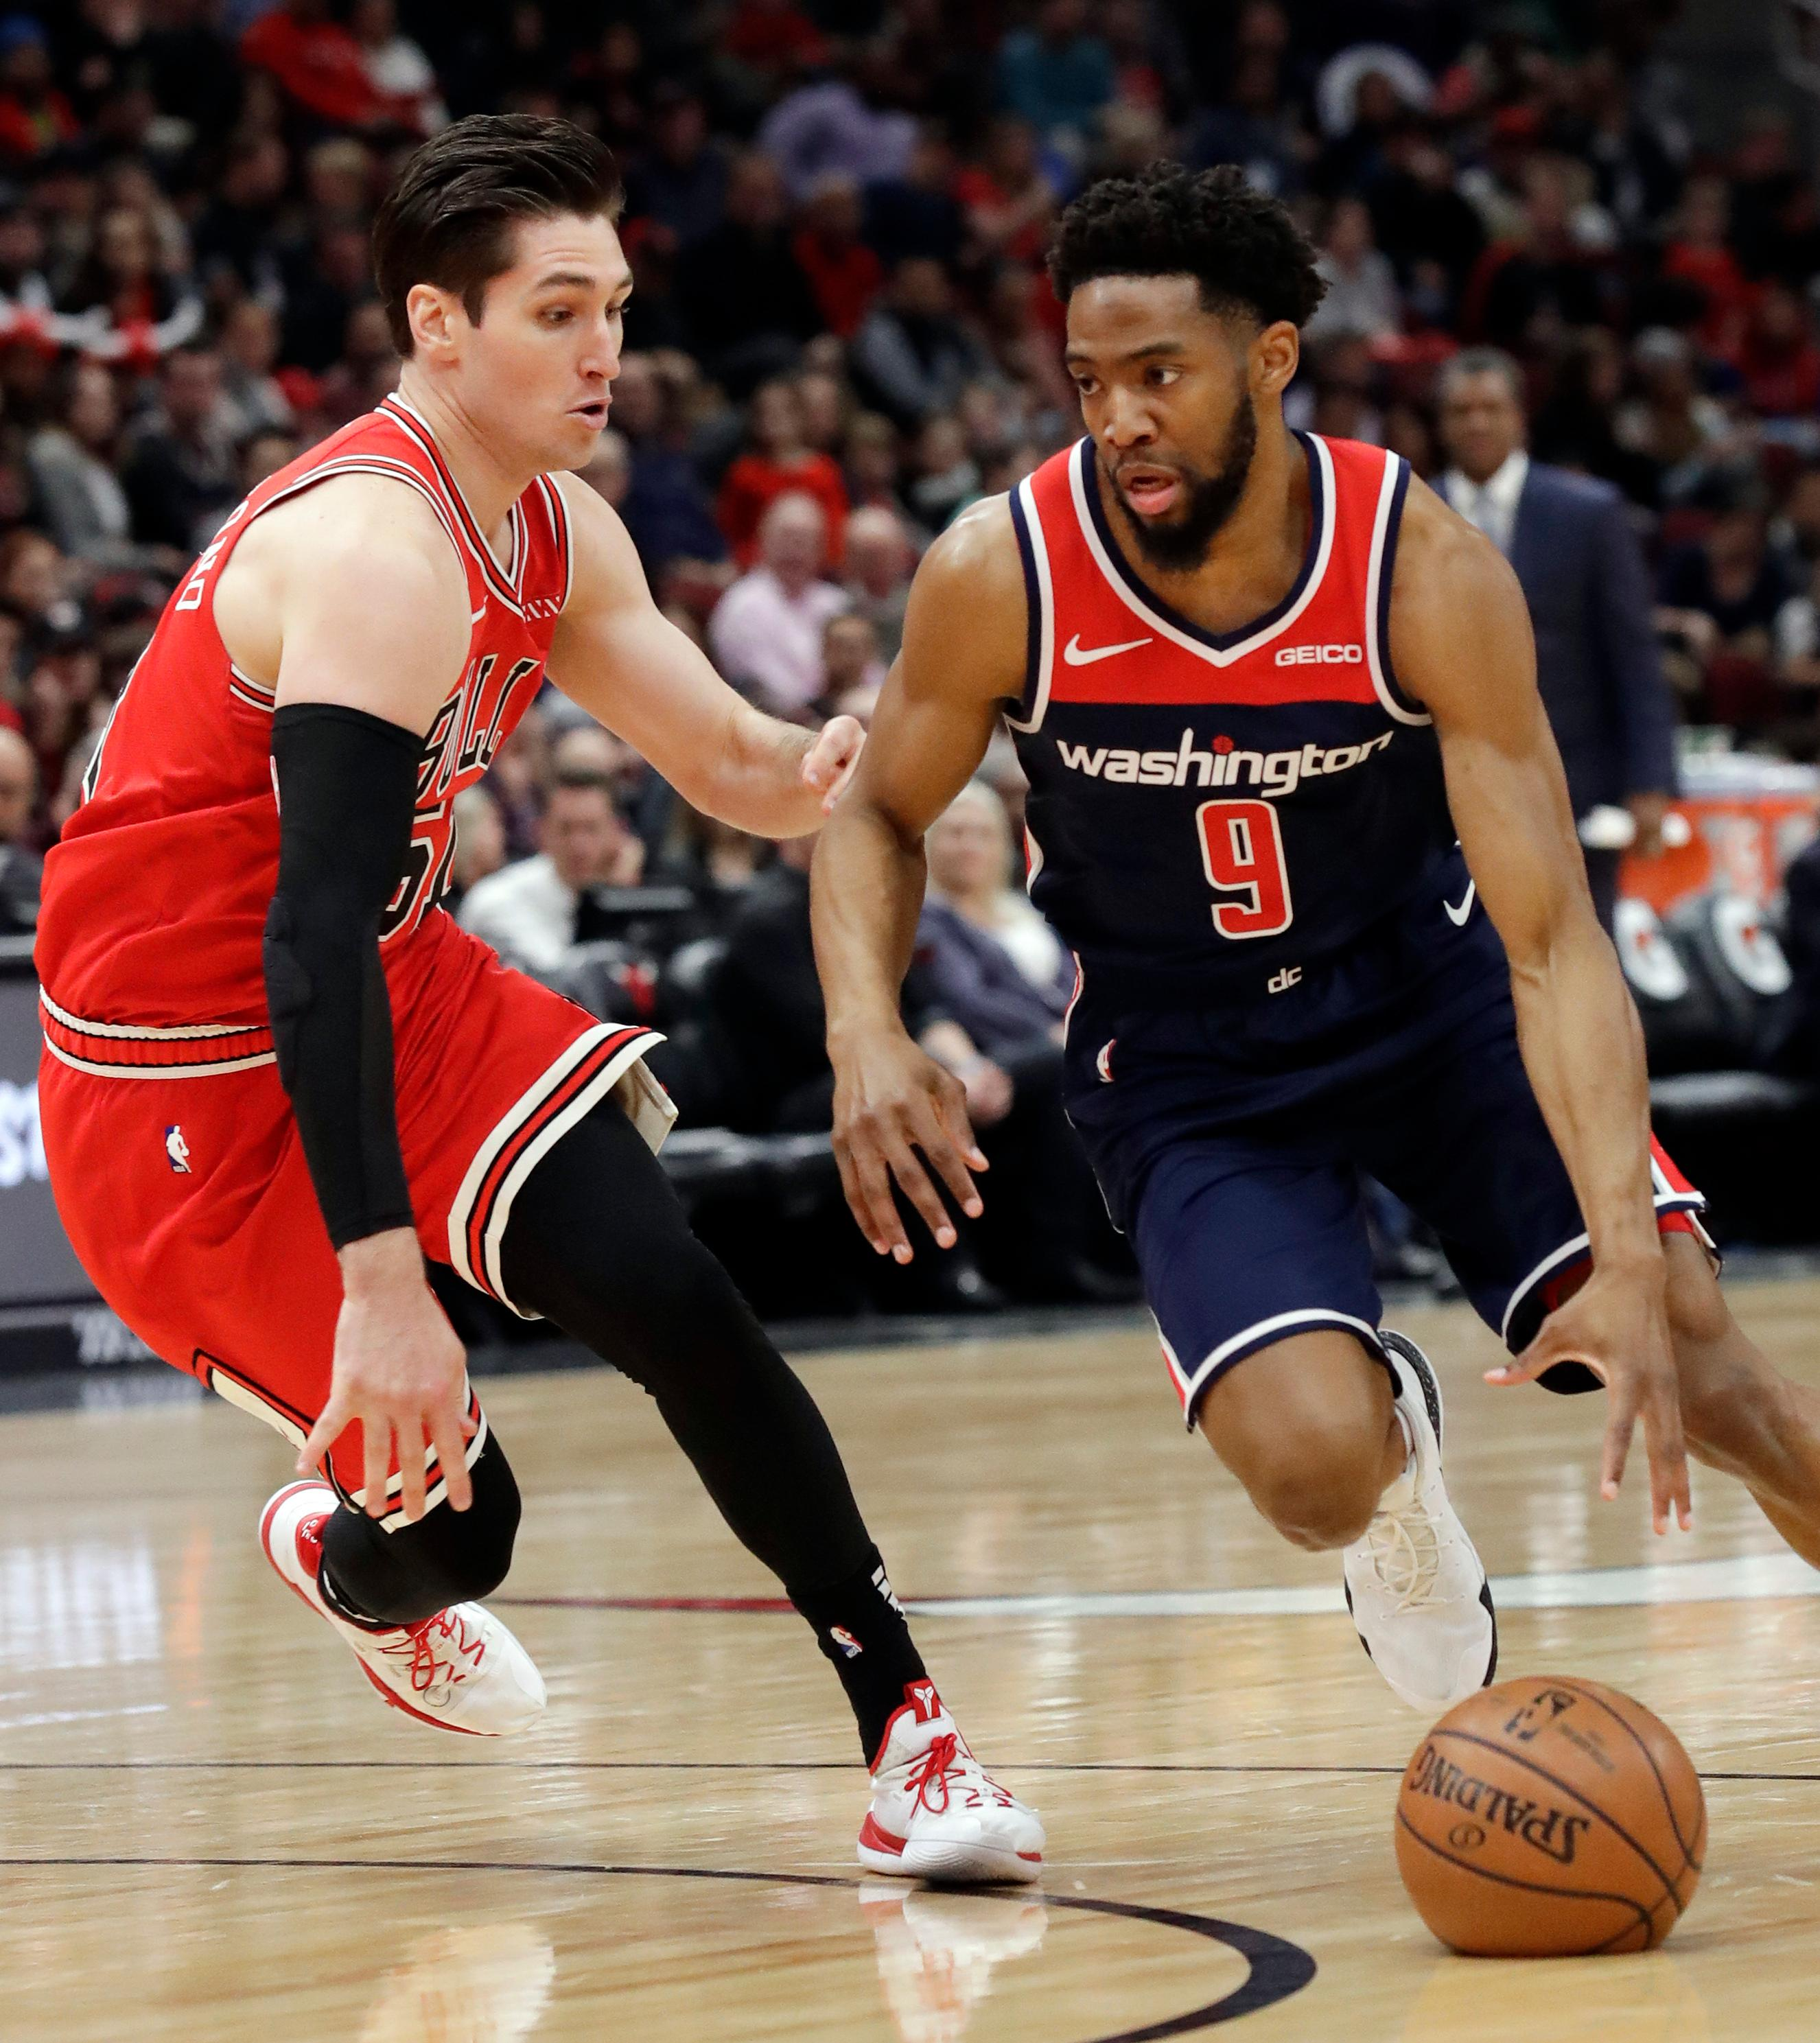 Washington Wizards guard Chasson Randle, right, drives against Chicago Bulls guard Ryan Arcidiacono during the first half of an NBA basketball game Wednesday, March 20, 2019, in Chicago. (AP Photo/Nam Y. Huh)